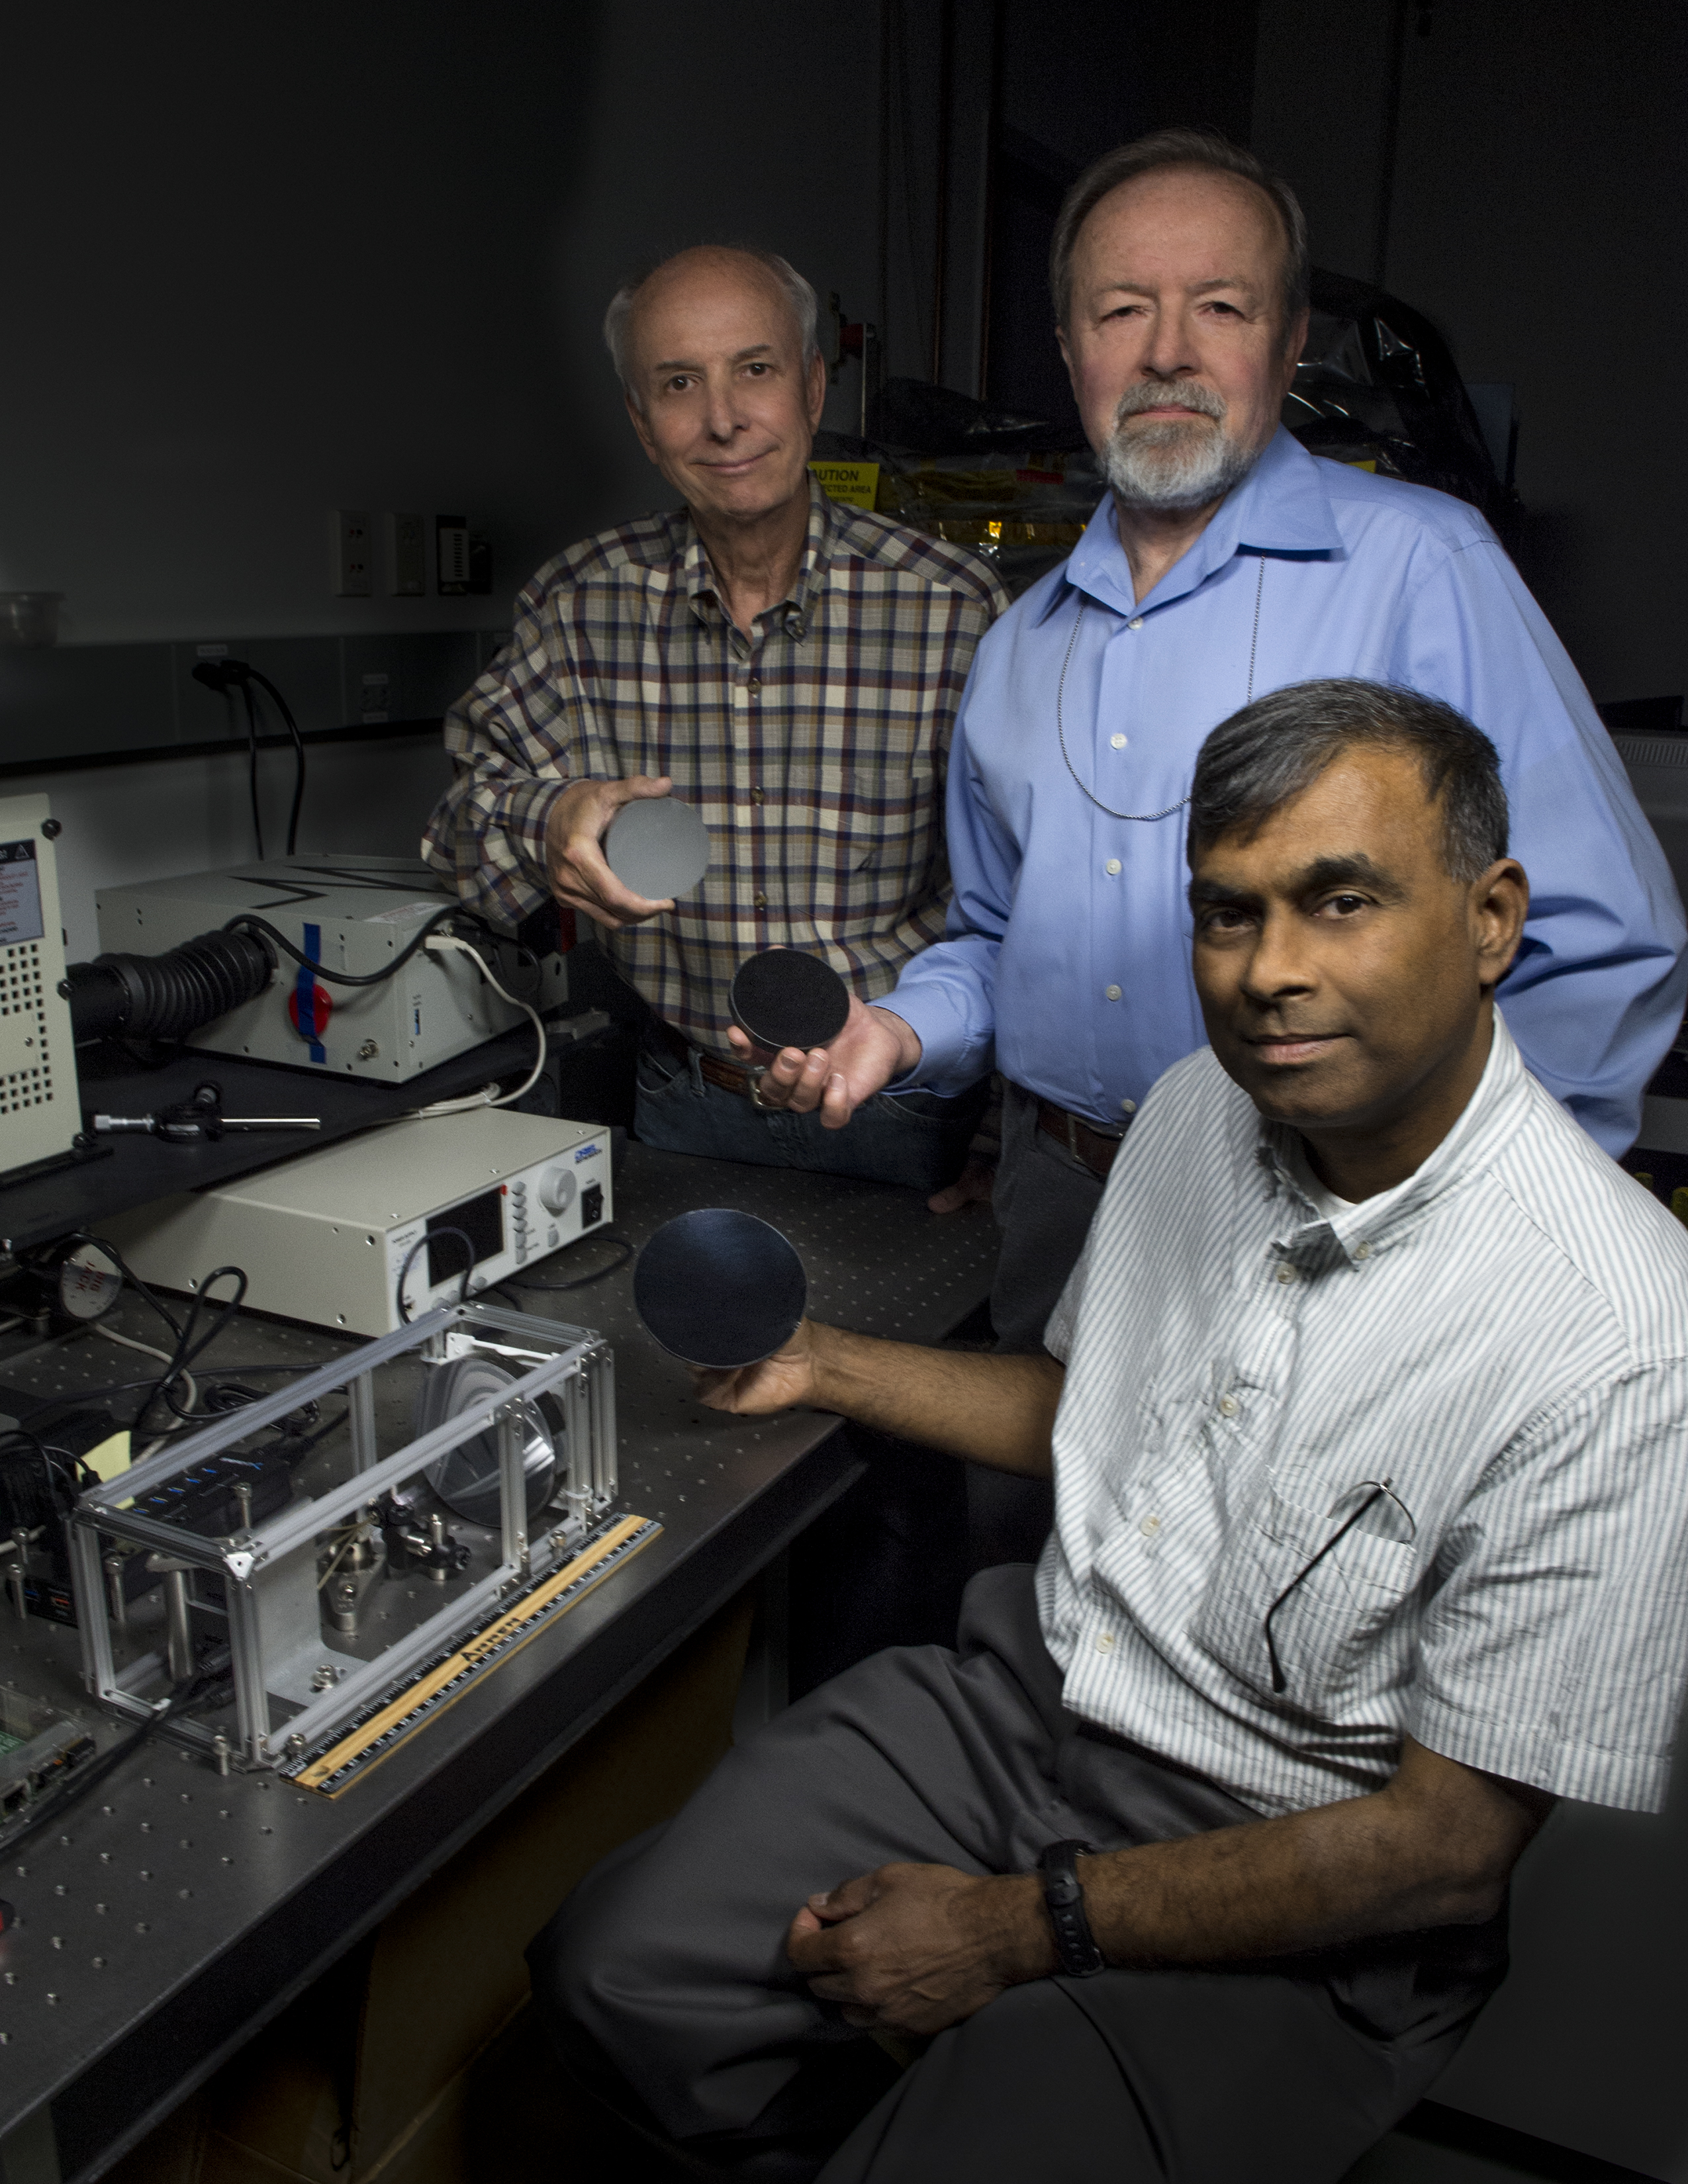 team members who developed the CubeSat technology